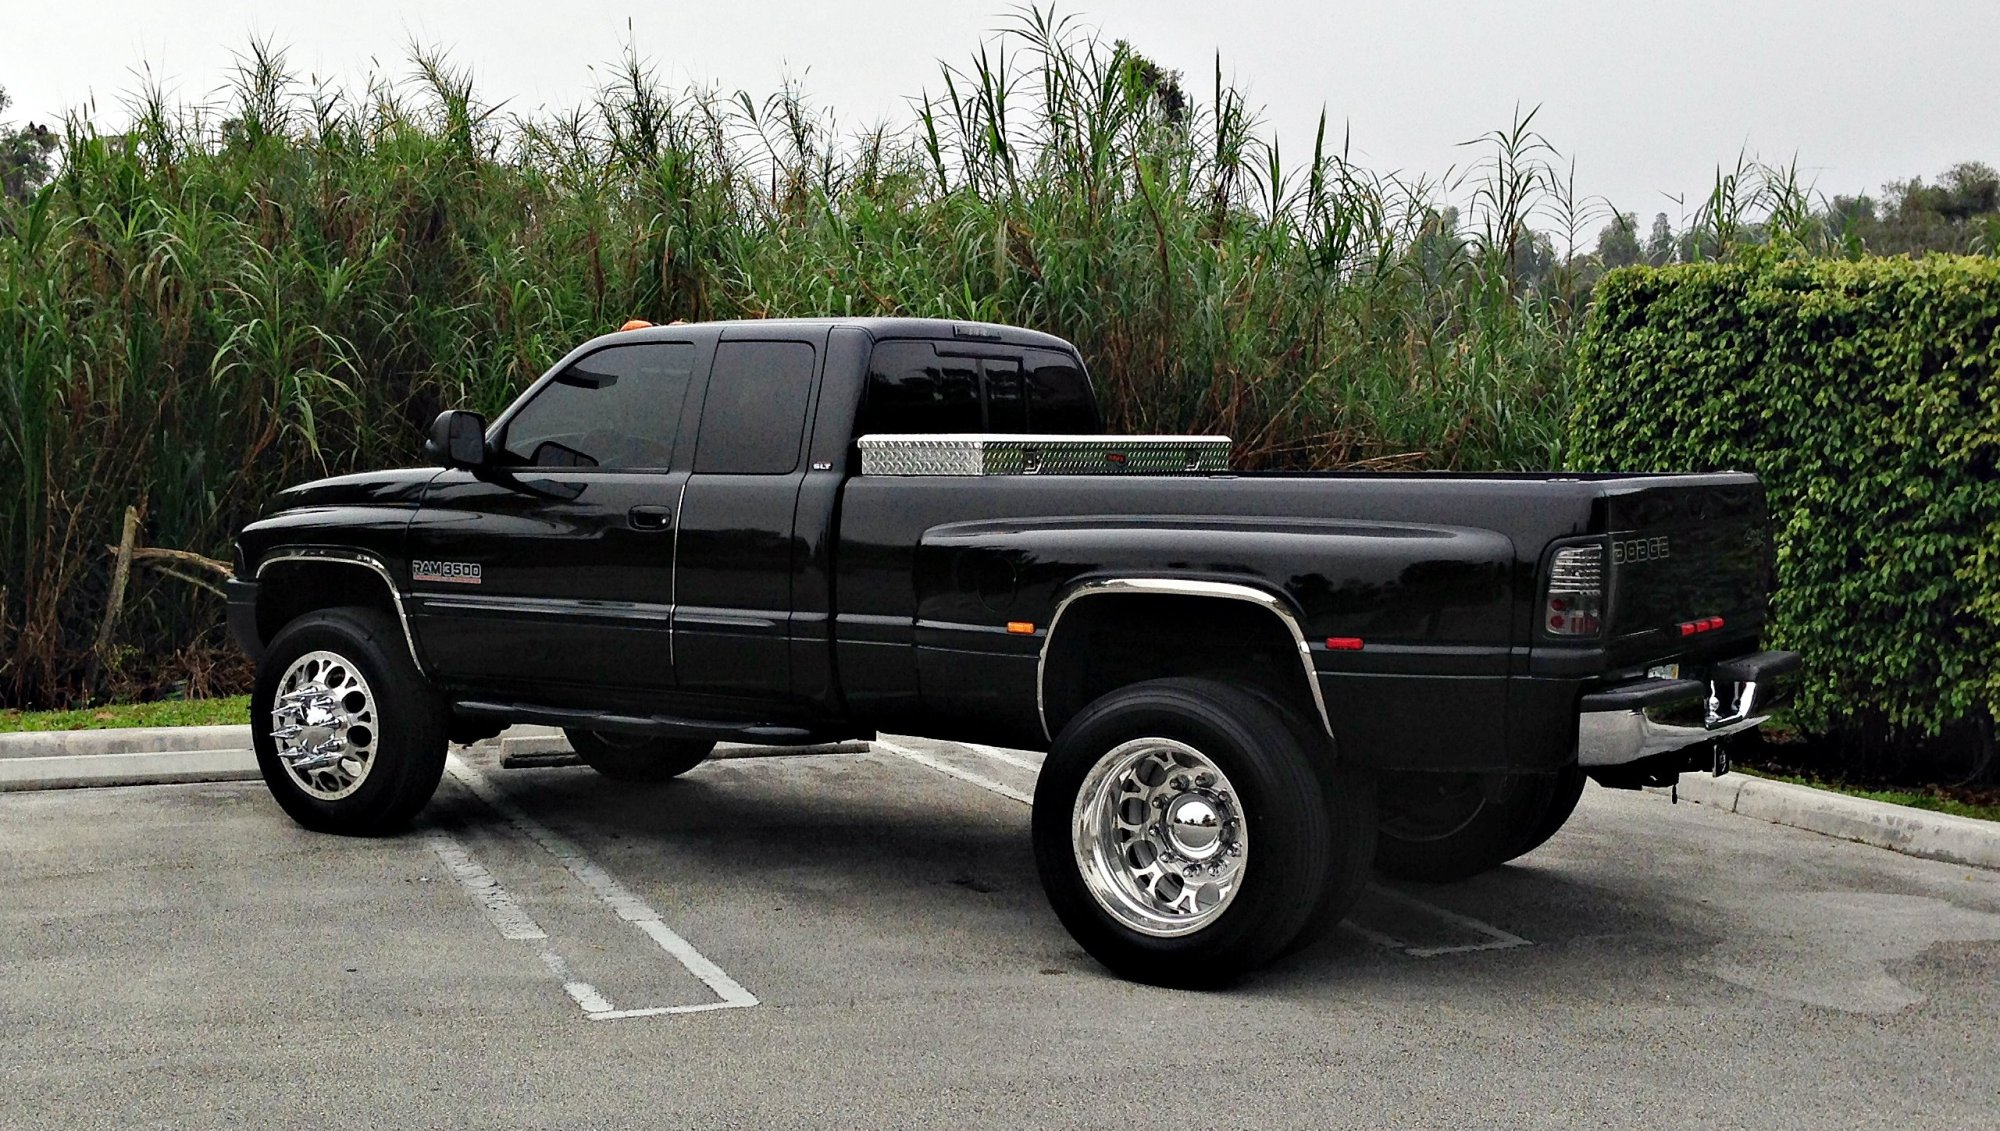 hight resolution of conquryourfear 2002 dodge ram 3500 quad cab